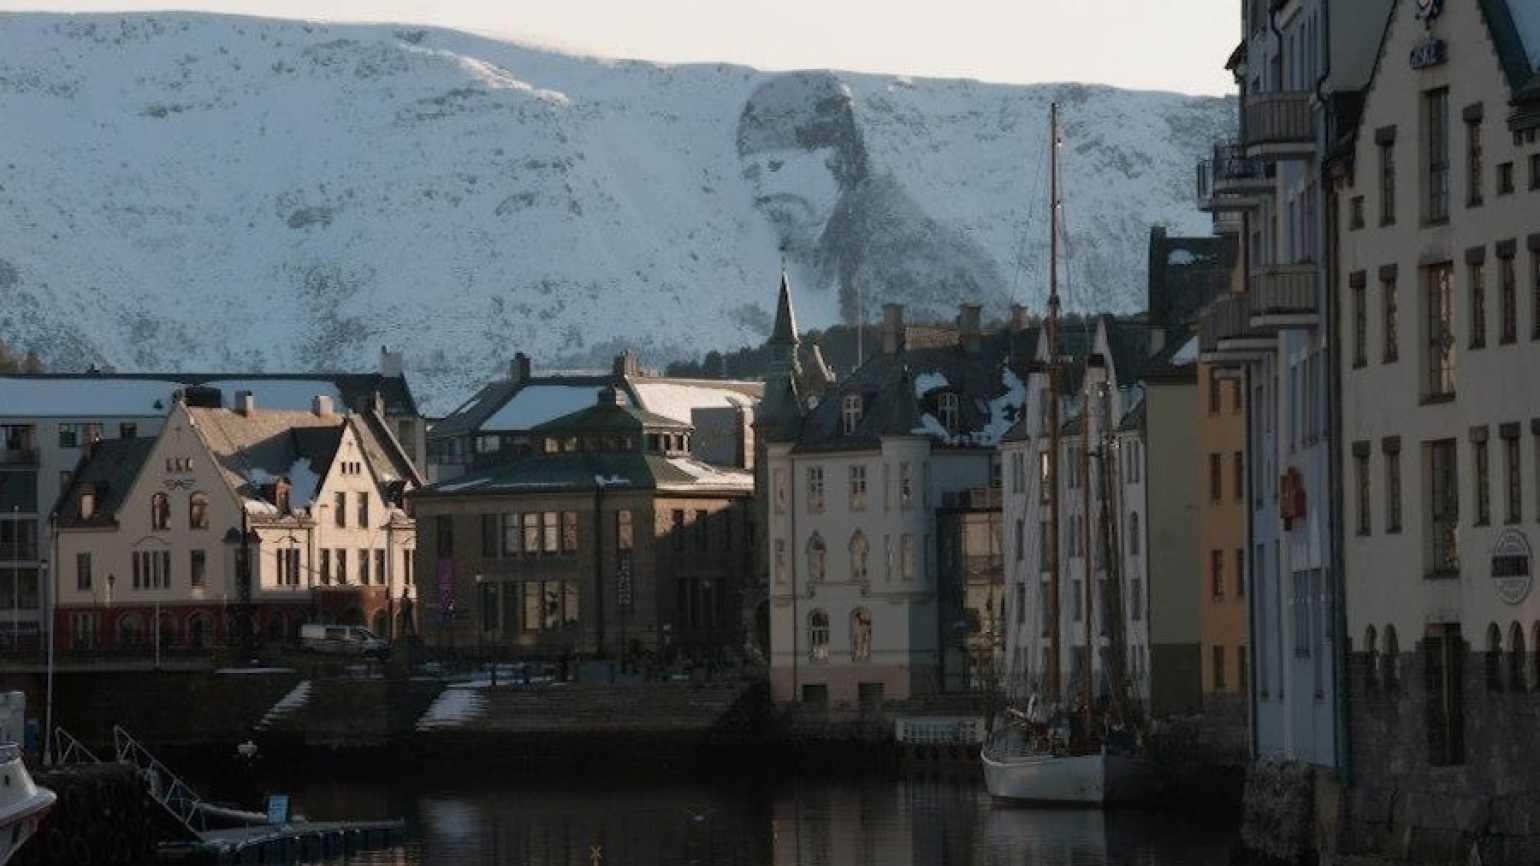 Sulamannen, the snow man who watches over the Norwegian port city of Ålesund.